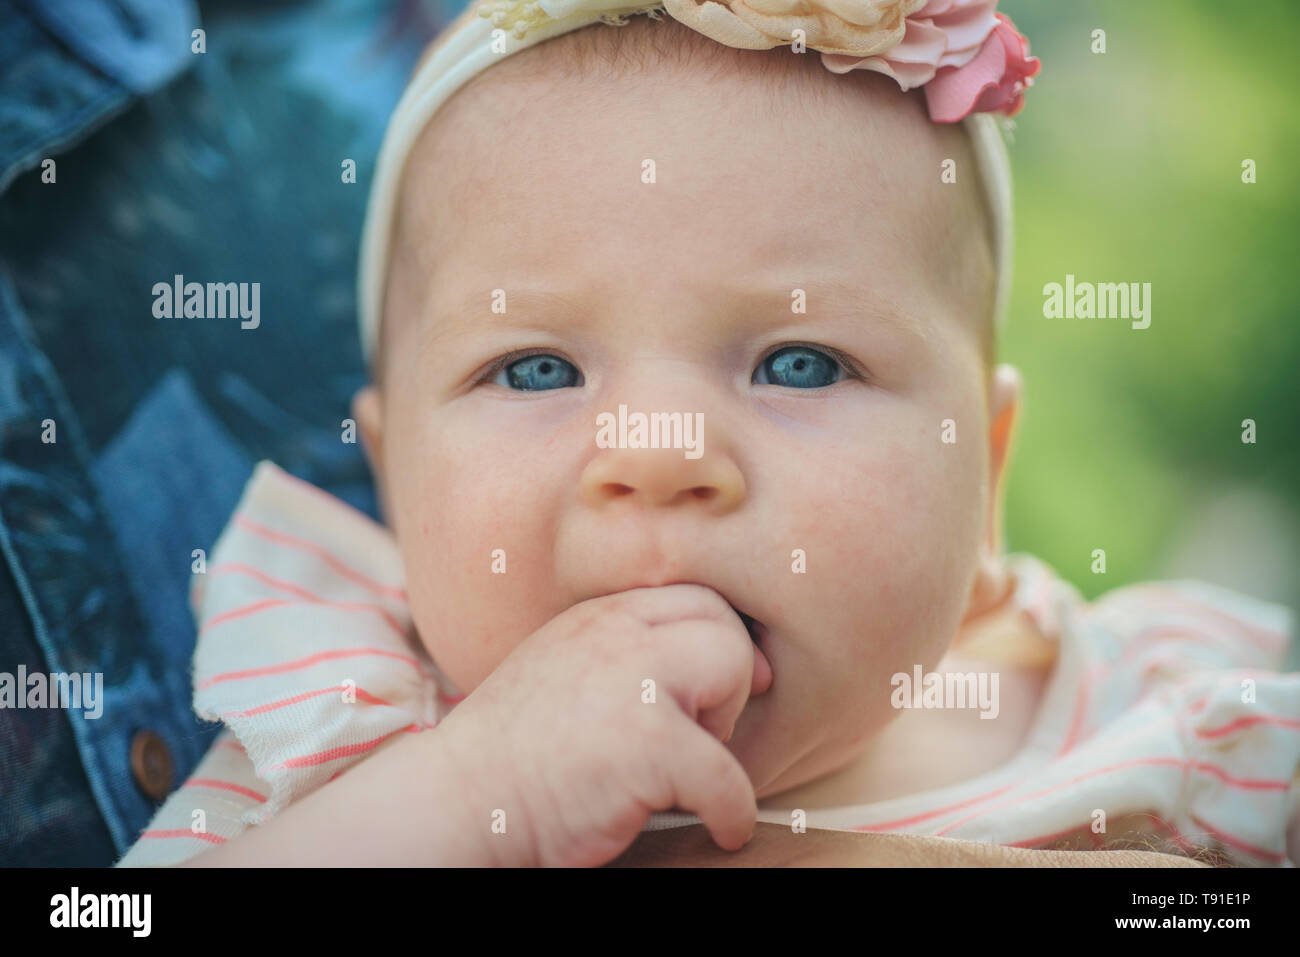 Newborn immunity is only temporary. Little newborn. Baby girl. Little cutie. Developing babys immunity and immune system. Make sure your child is up - Stock Image